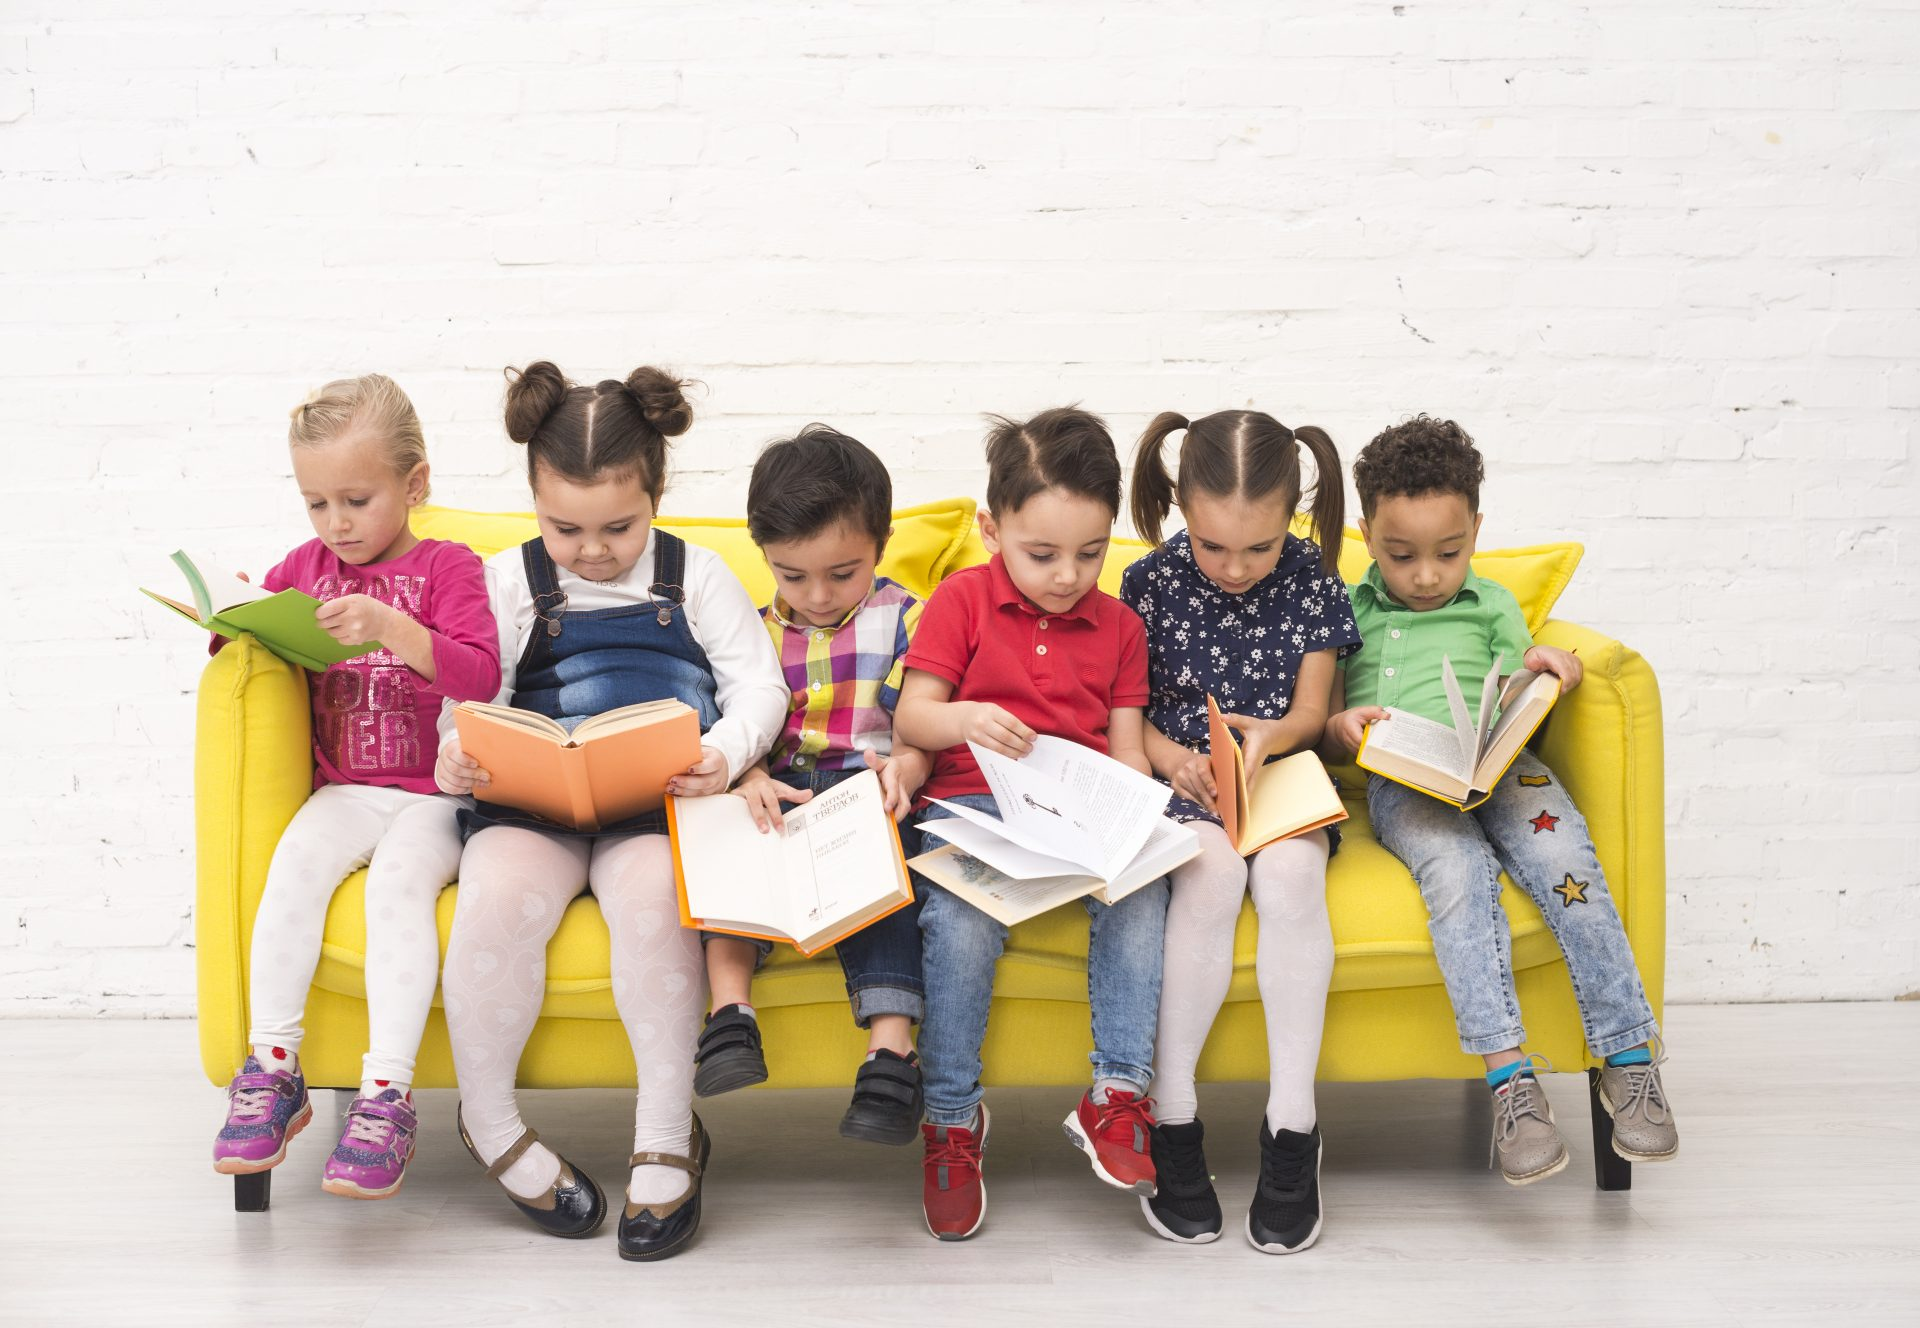 Image of 6 children sitting on a yellow couch all reading books